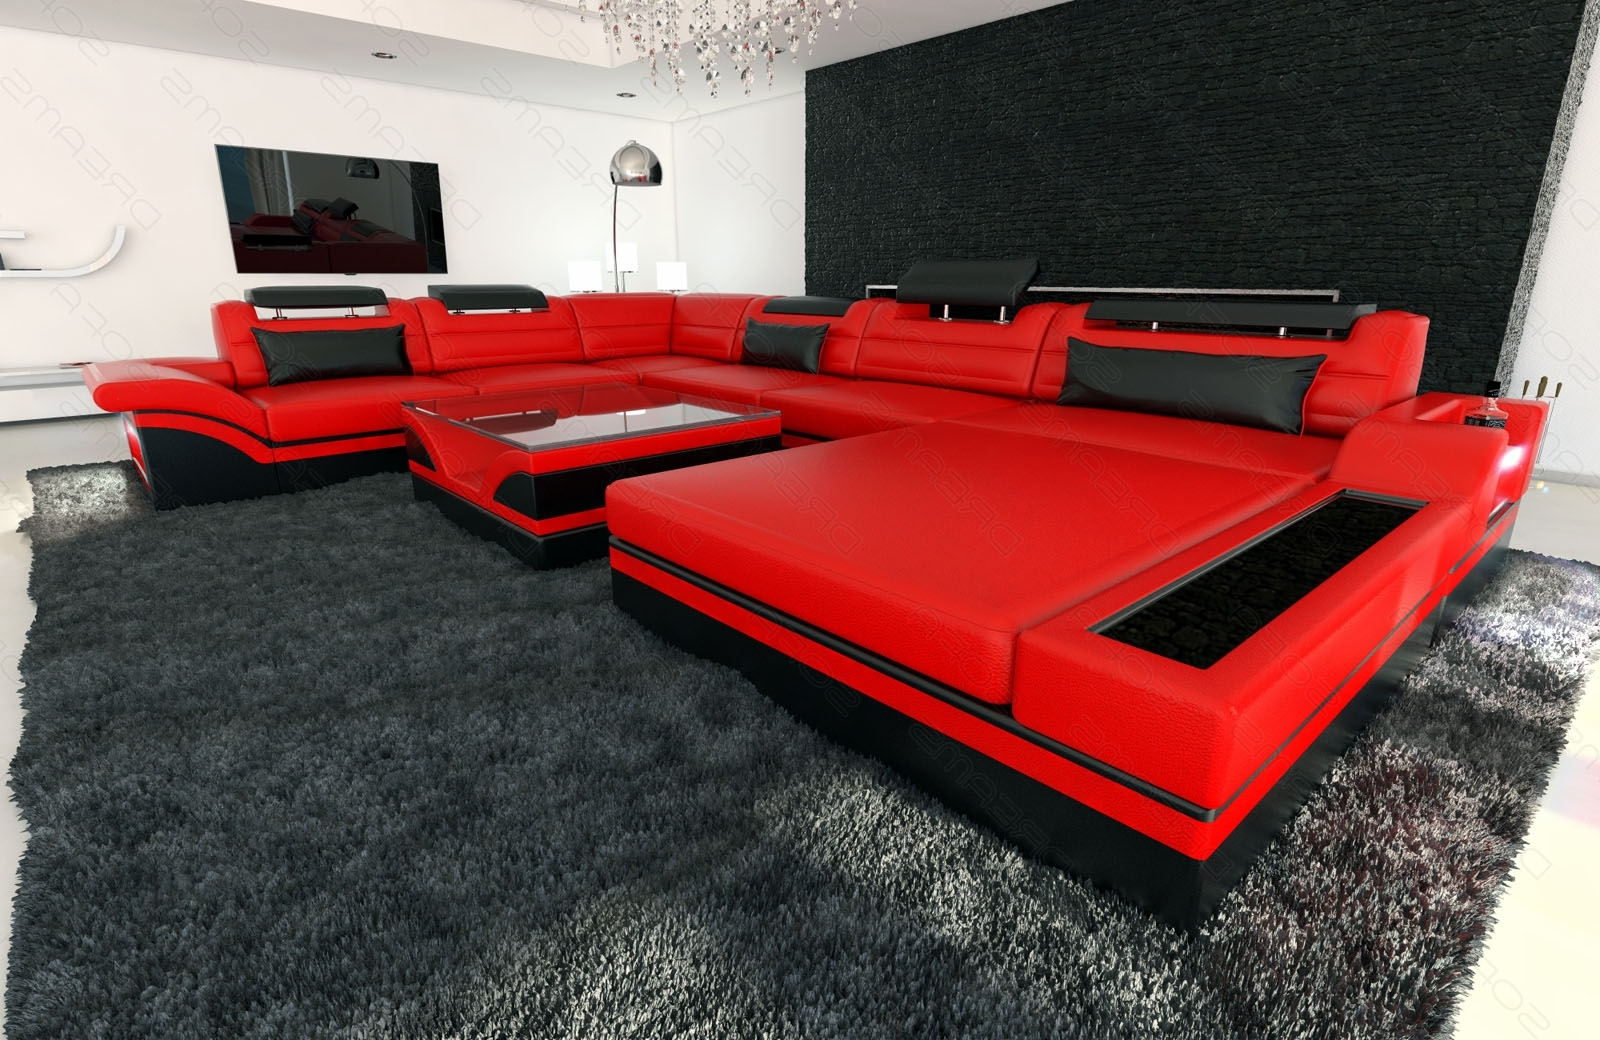 Well Known Design Sectional Sofa Mezzo Xxl With Led Lights Red Black (View 15 of 15)